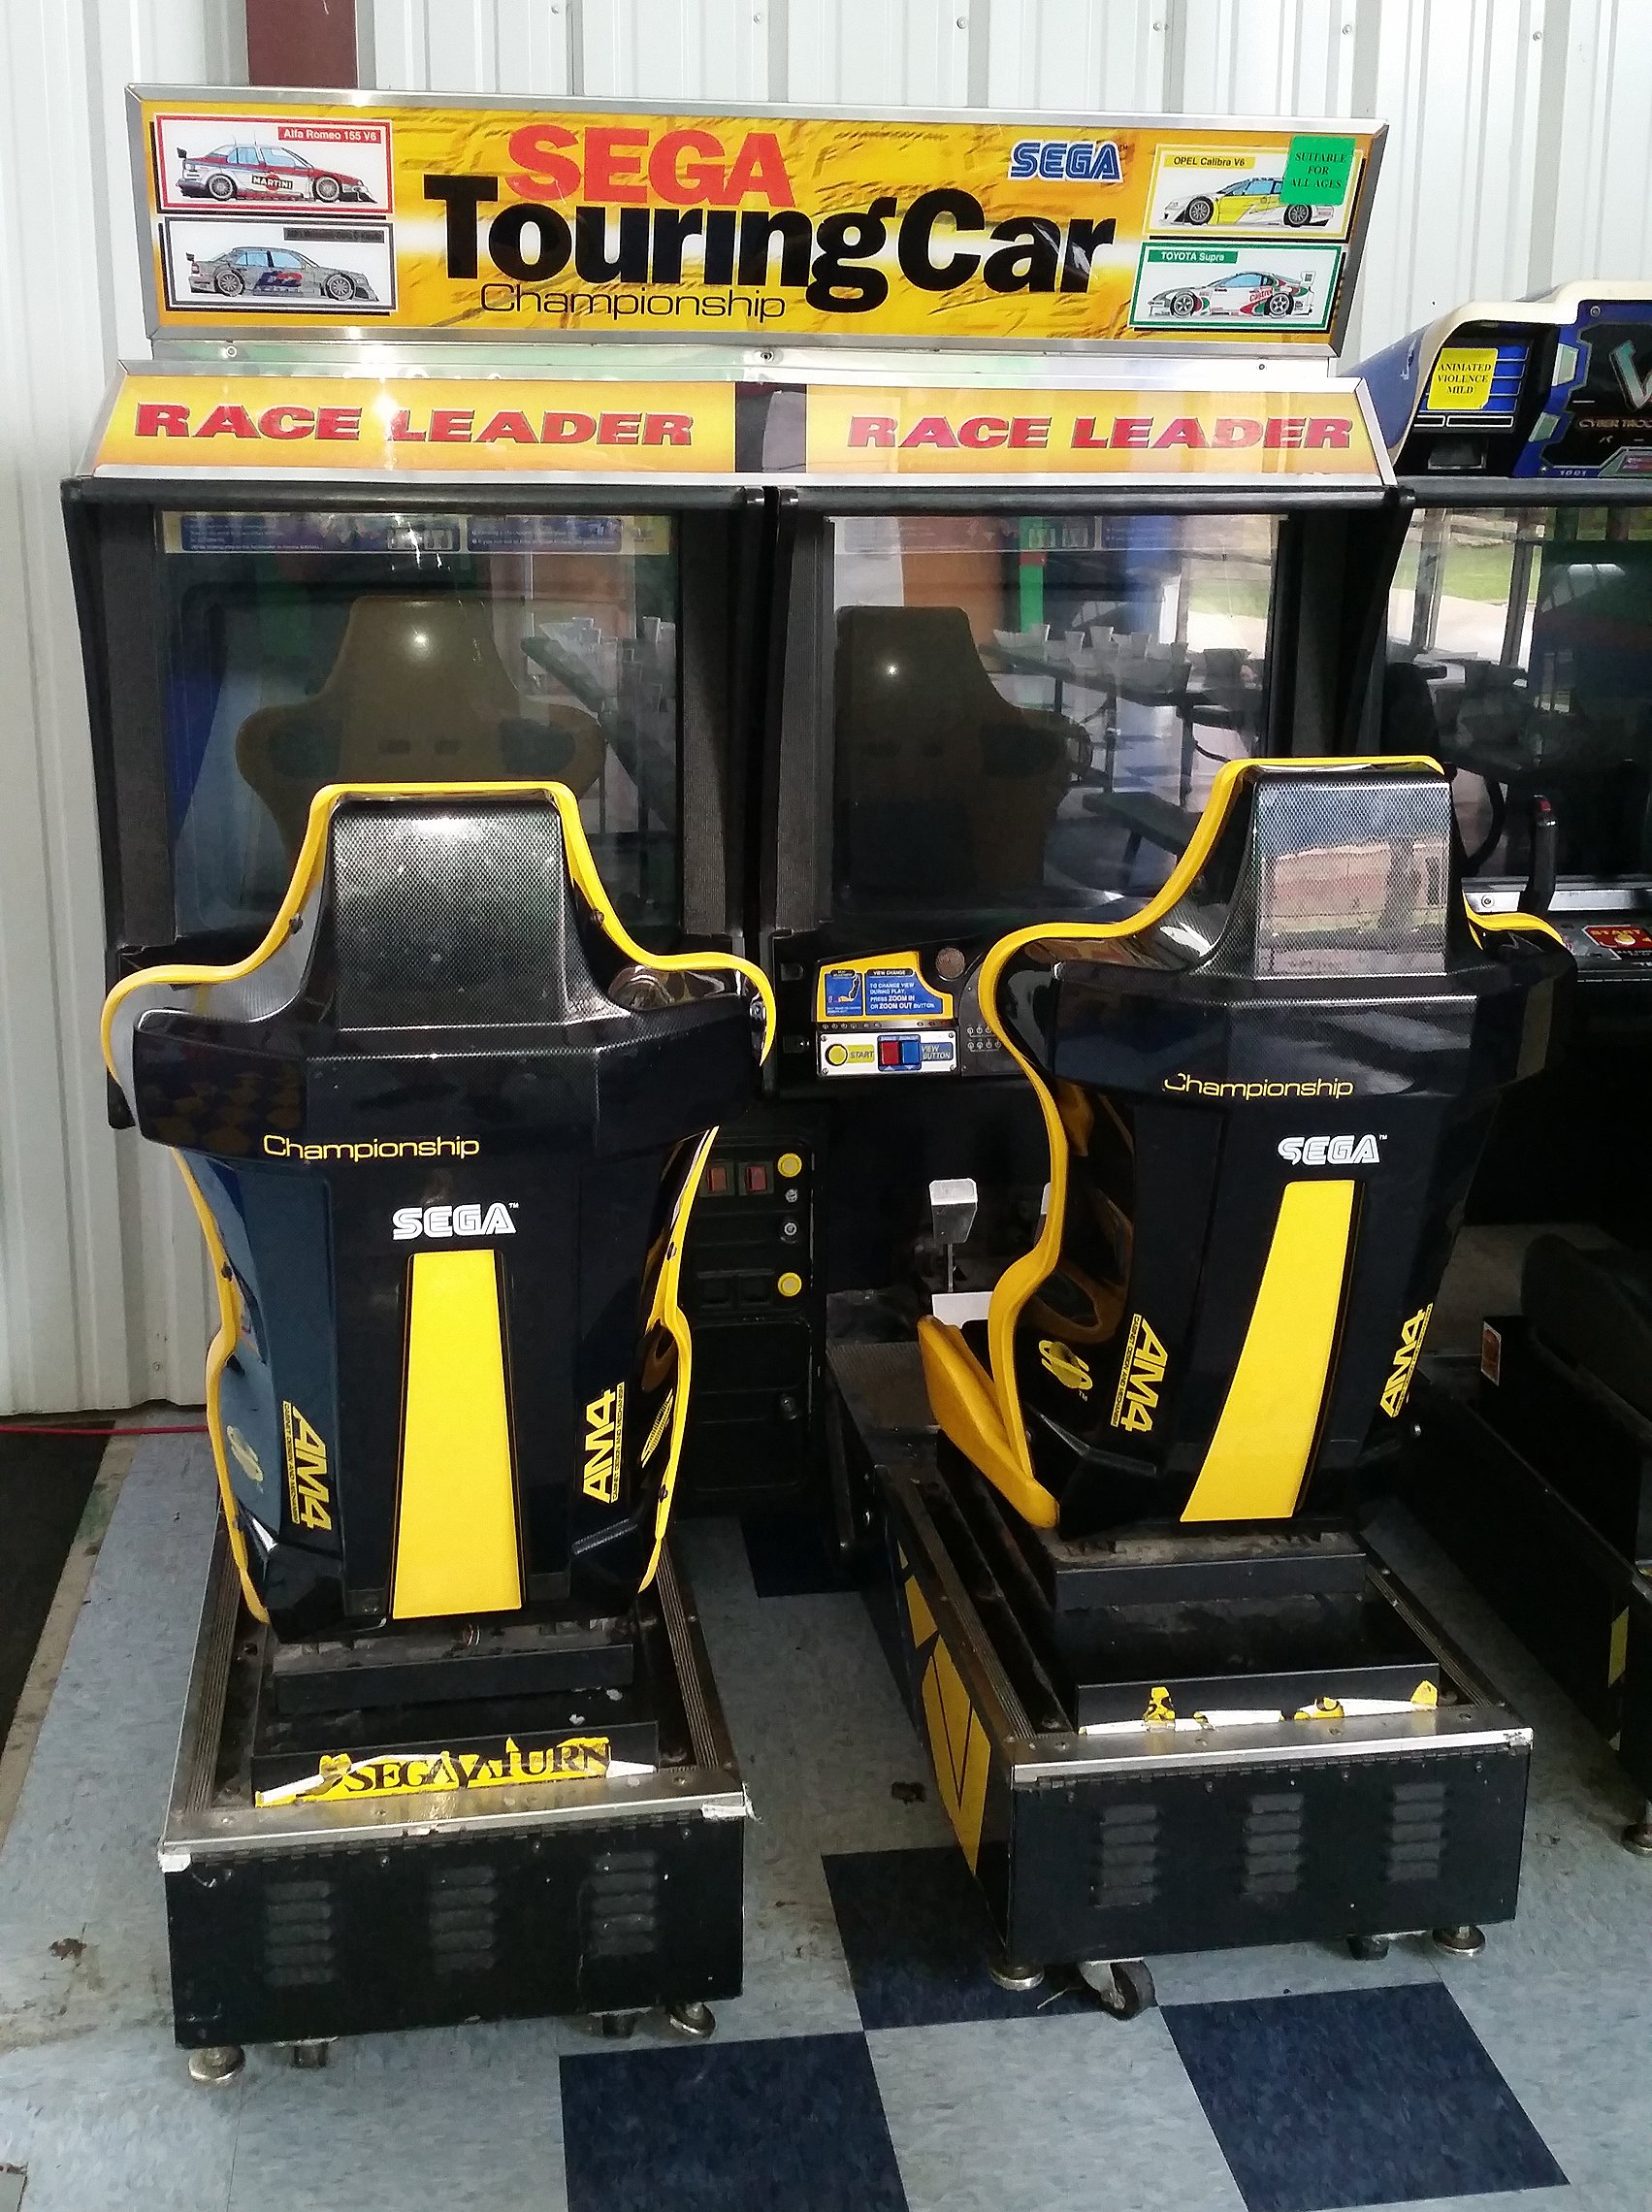 Sell Car For Cash >> Sega Touring Car Championship video arcade game for sale ...